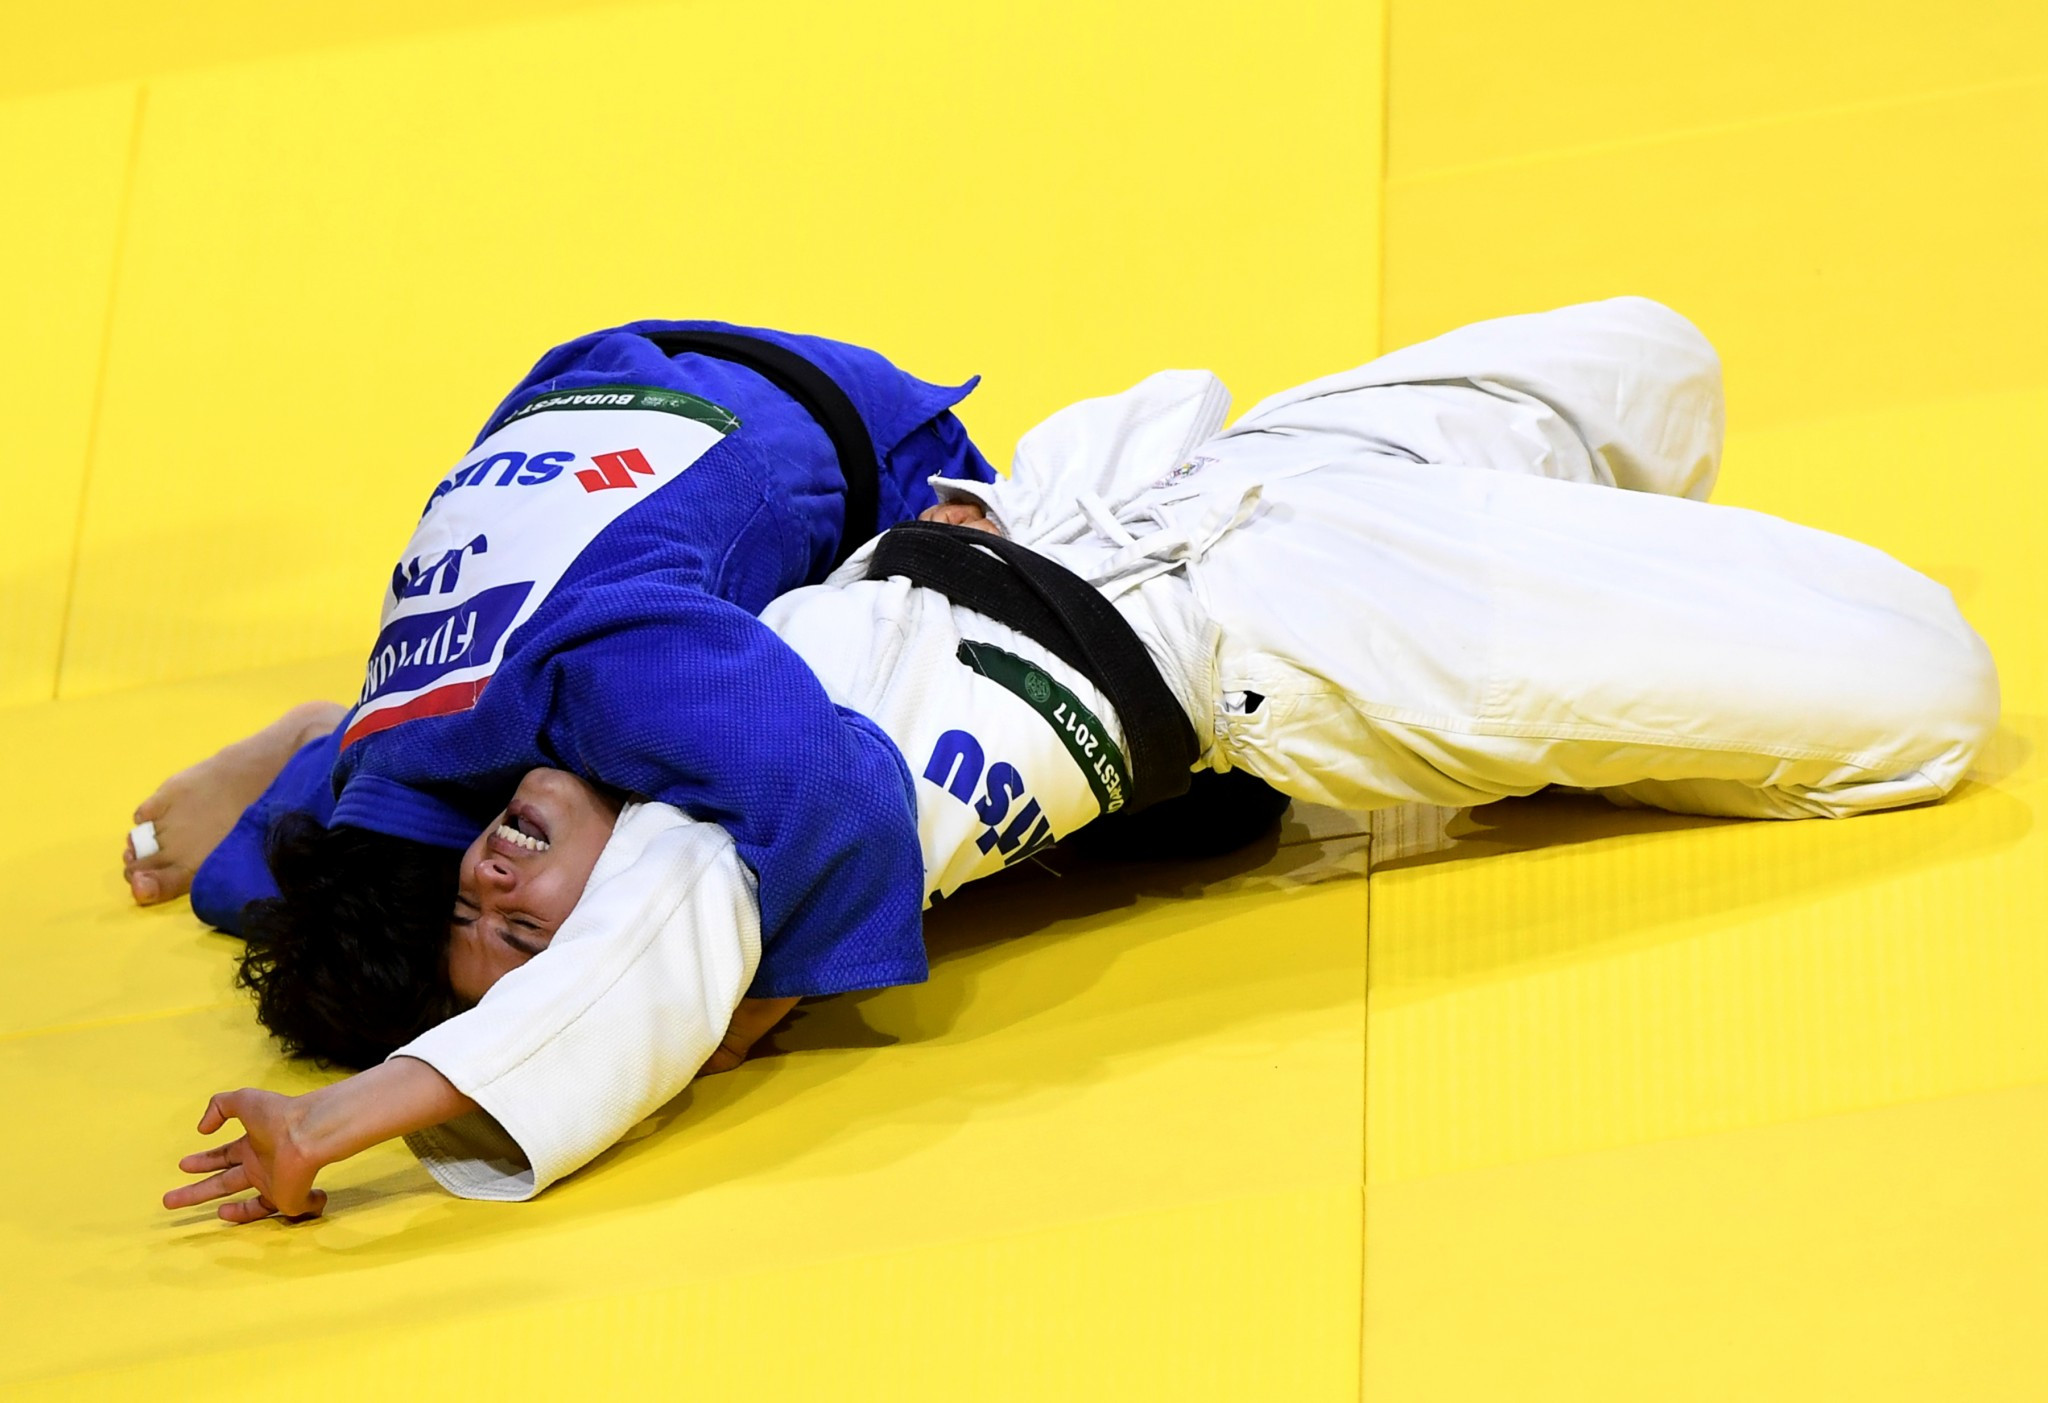 Japan's debutant Funa Tonaki produced a superb performance to claim the under 46kg gold medal ©Getty Images